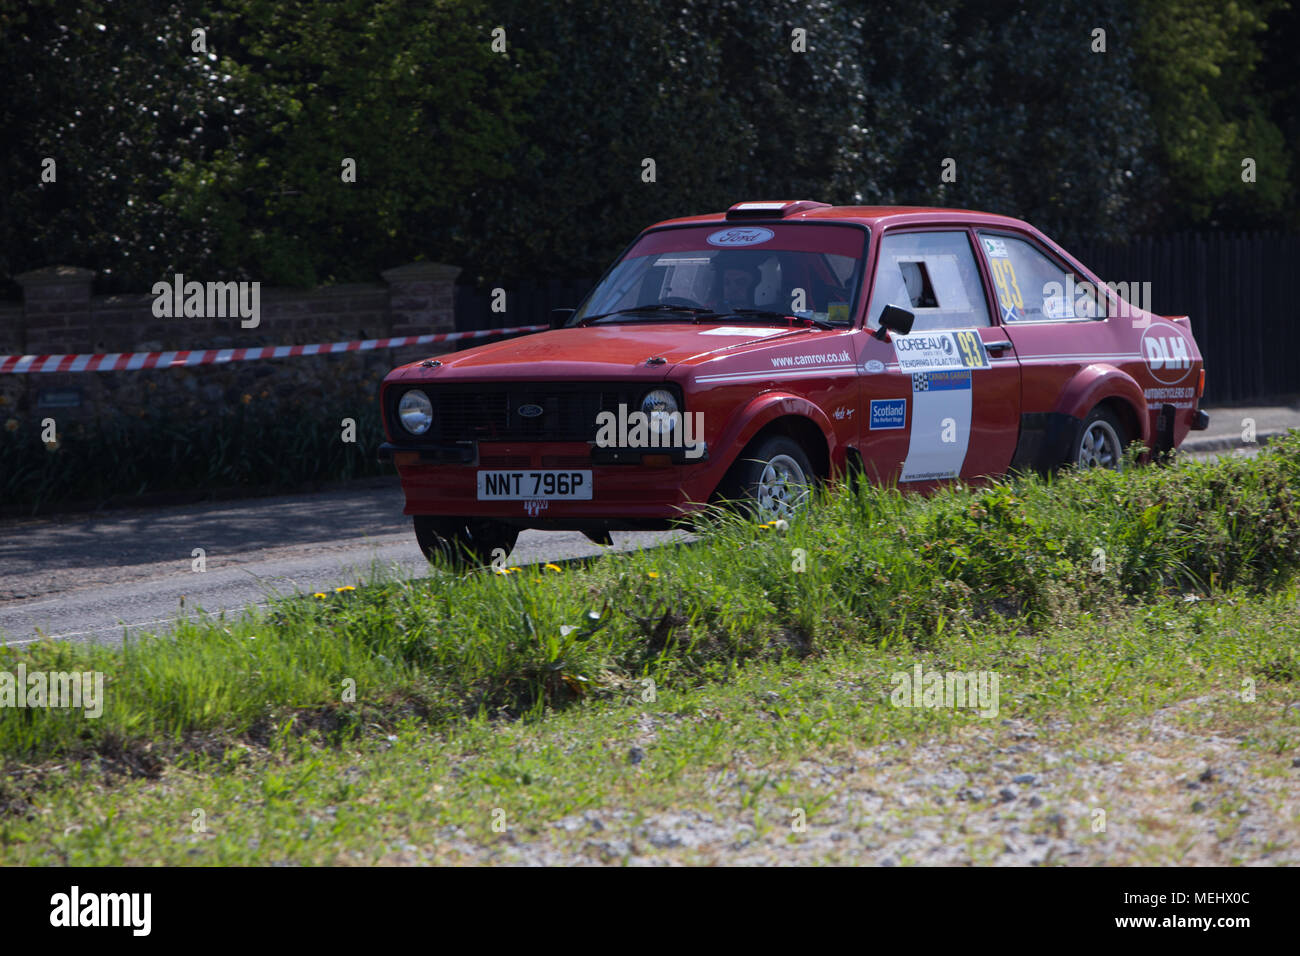 Road Rally Stock Photos Road Rally Stock Images Alamy - Car rally near me